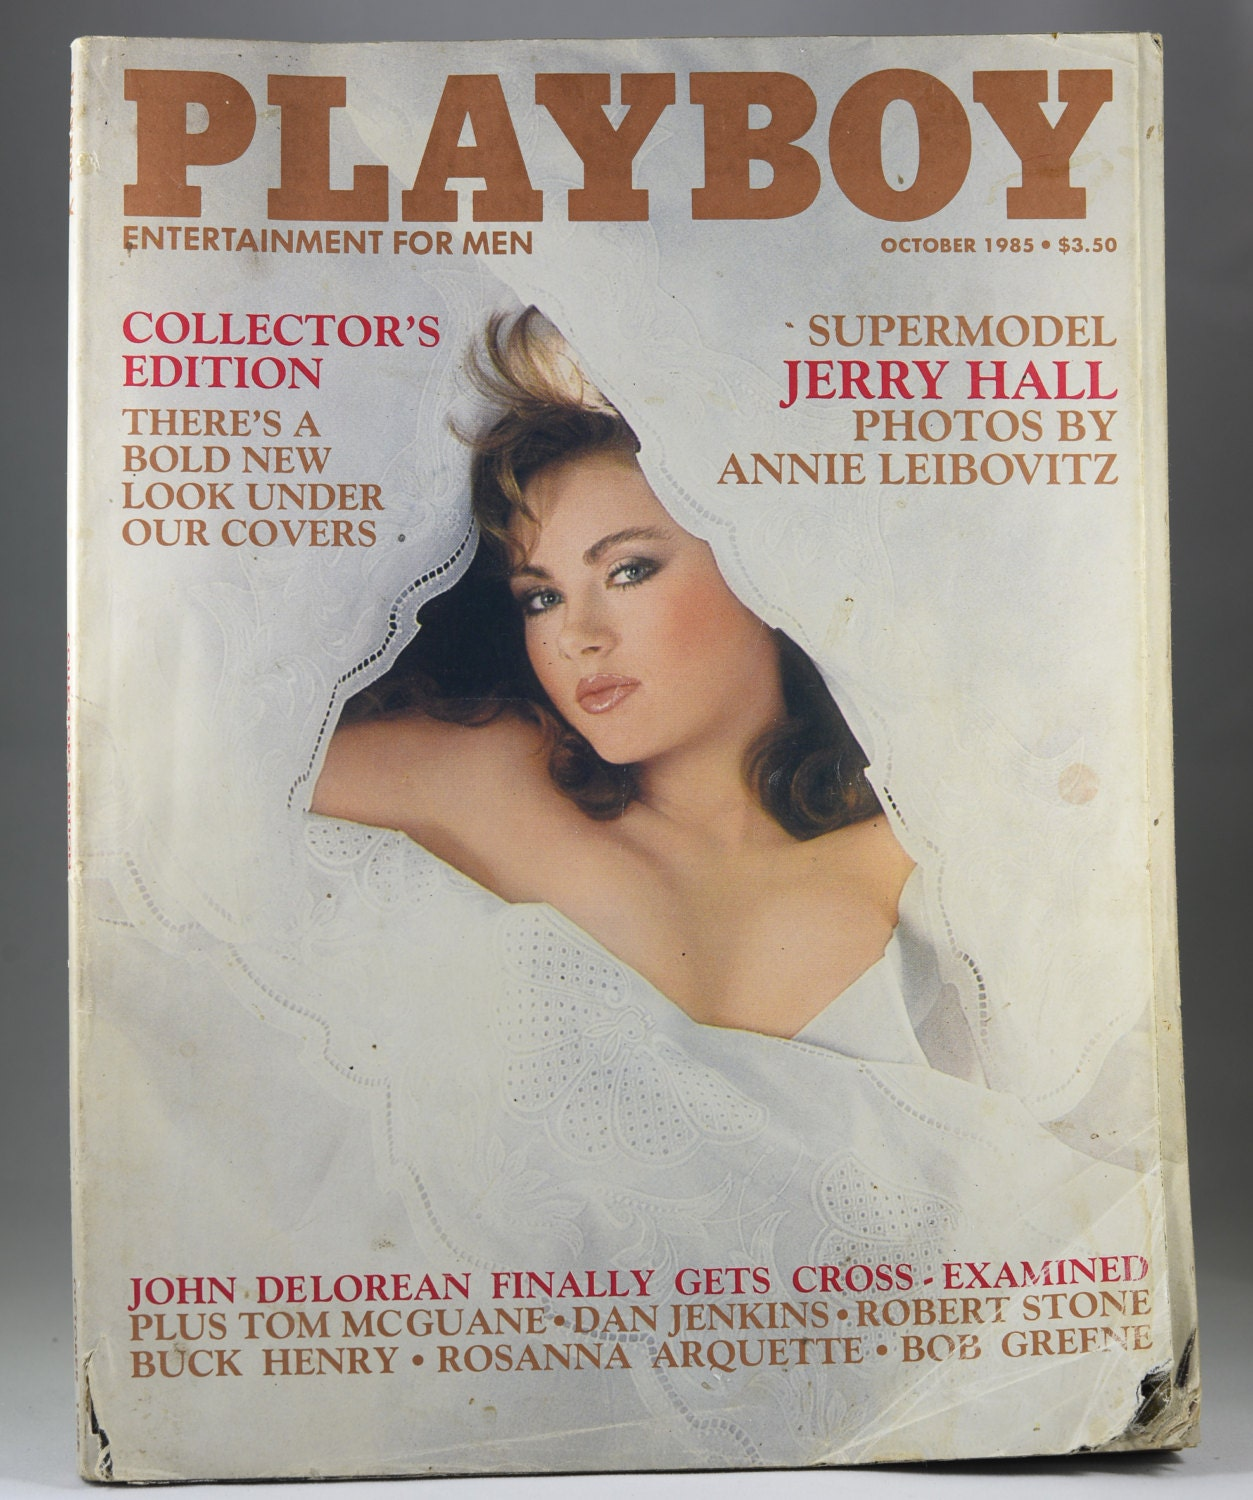 Playboy Poster Full Frontal Nudity Female Nudity Playboy  Etsy-3323